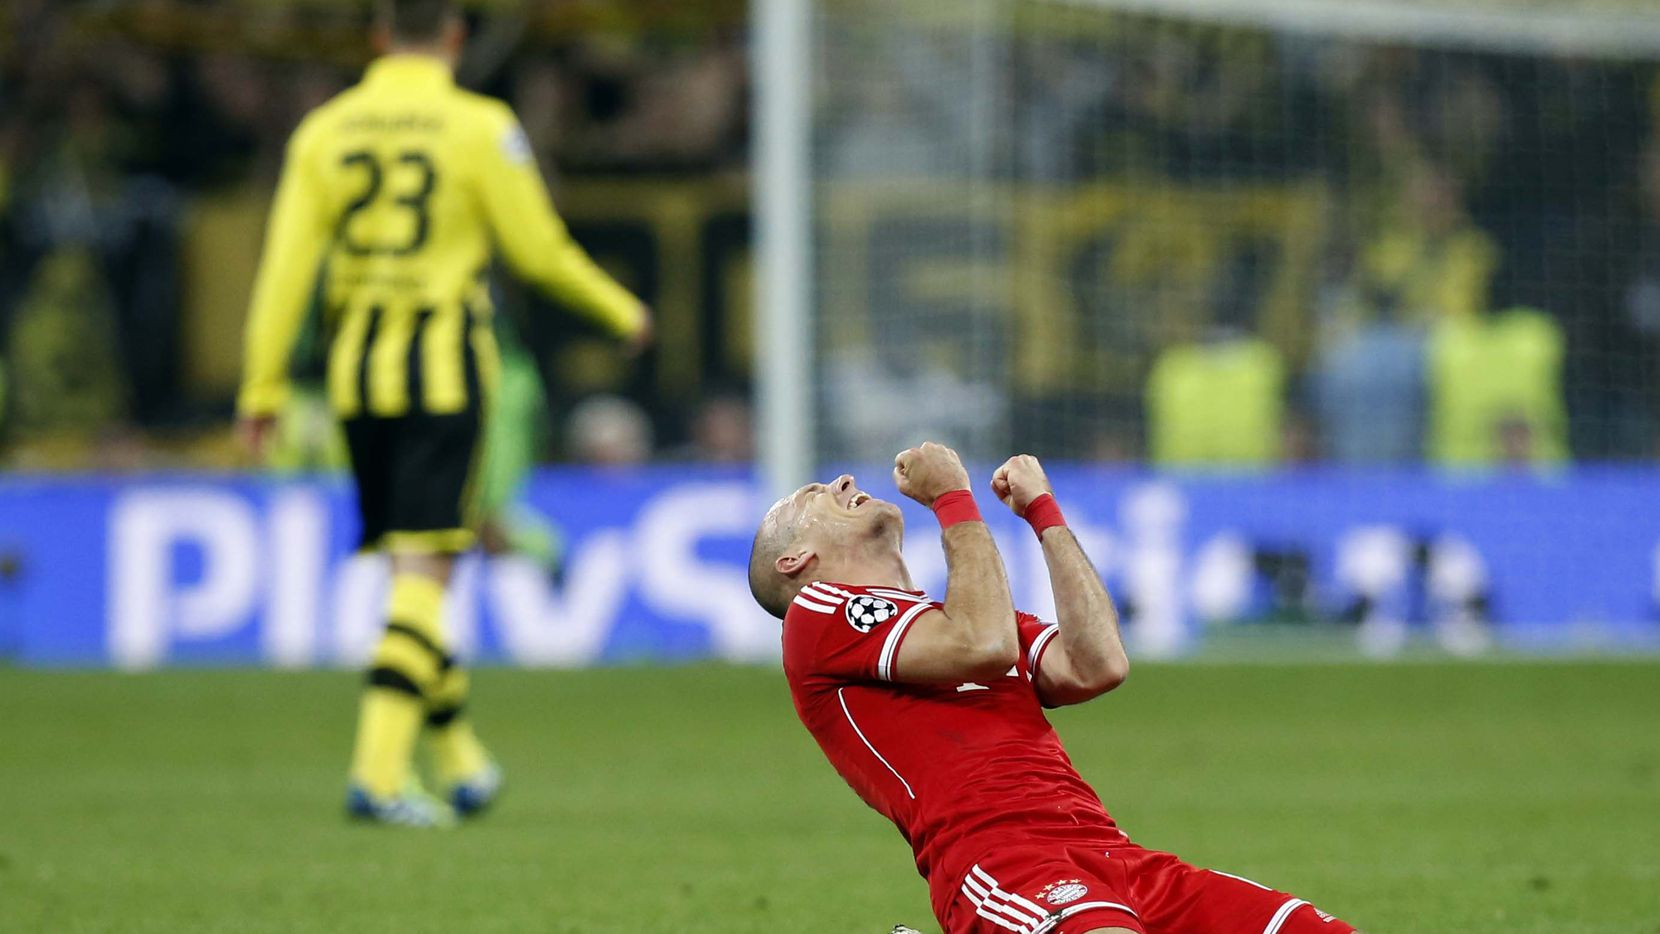 Arjen Robben Scores In 89th Minute To Give Bayern Munich Win Over Borussia Dortmund In Champions League Final